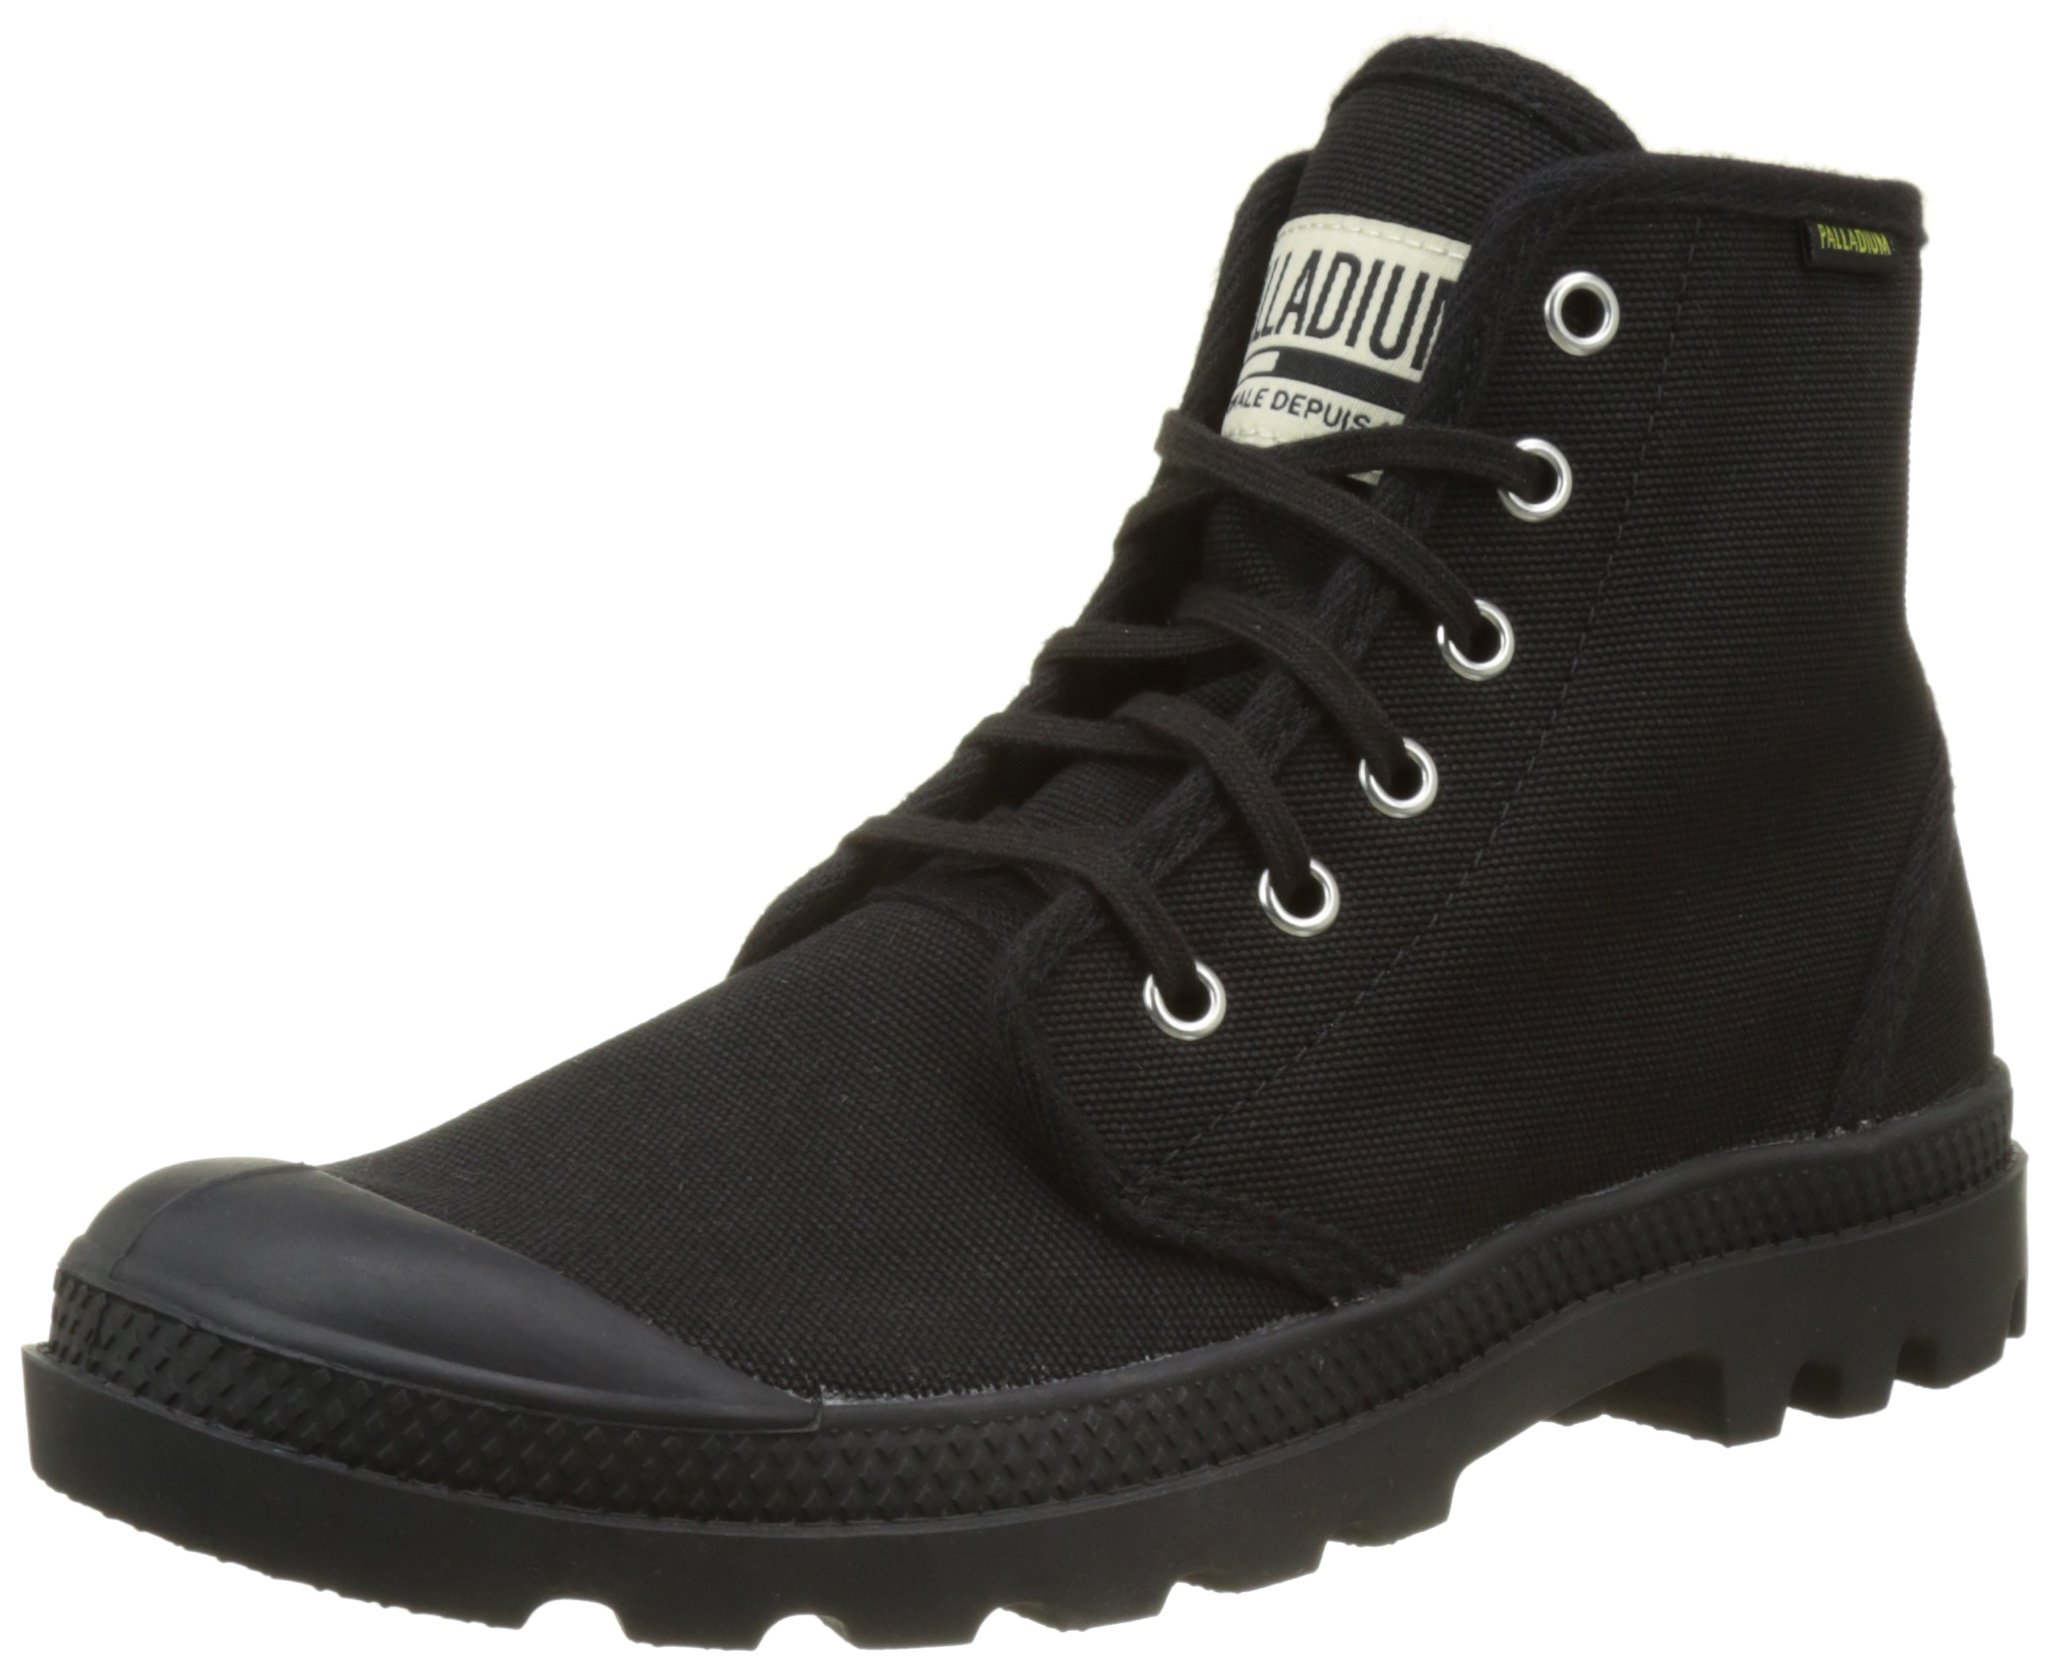 Palladium Eu Mixte Pampa Black44 Hautes OriginaleBaskets AdulteNoir Hi xhrsdtBQC